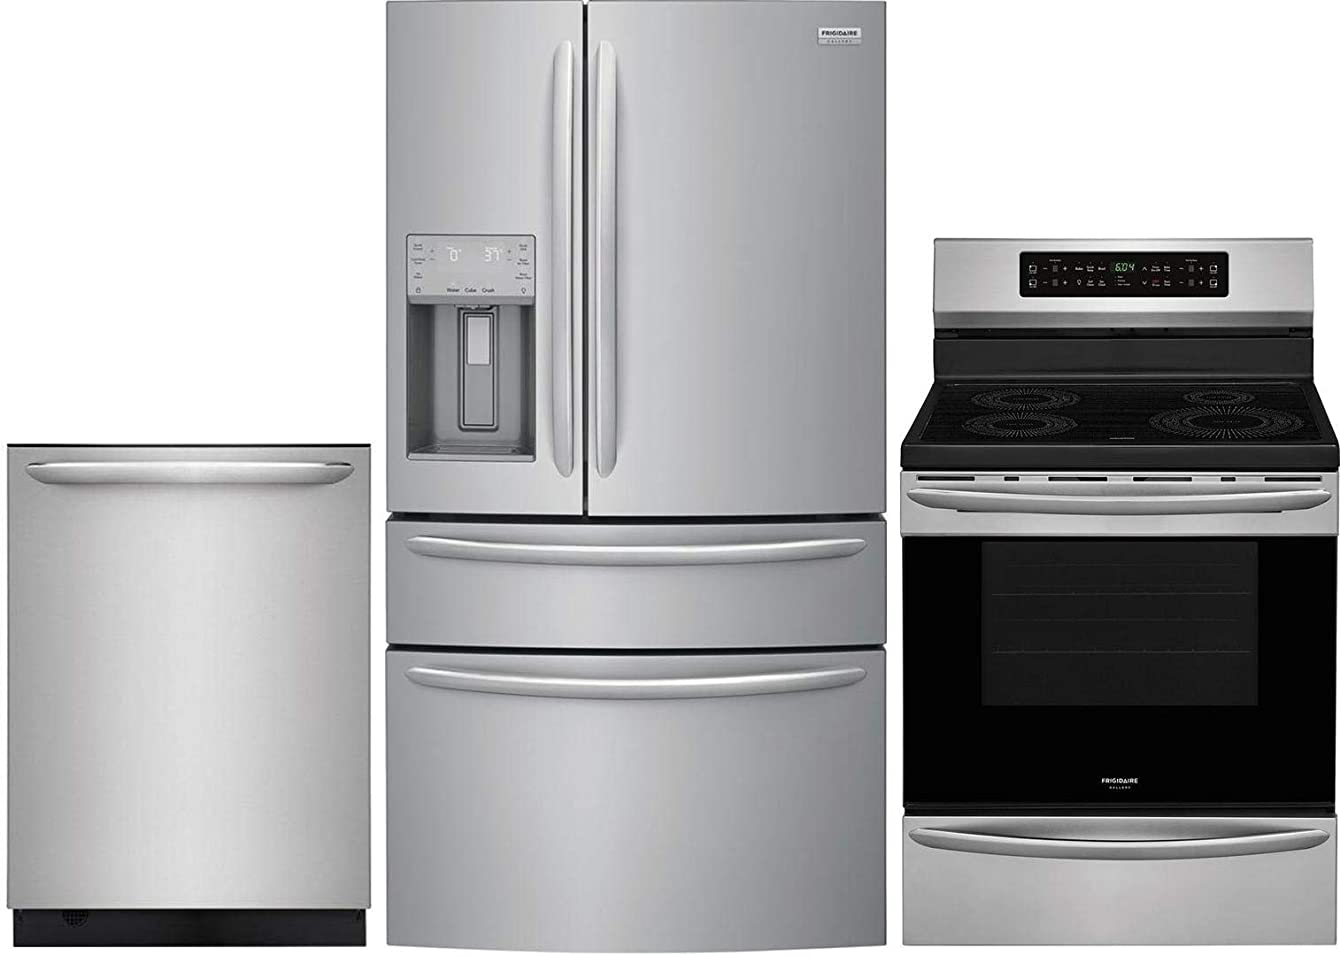 Frigidaire Gallery 3 Piece Kitchen Appliance Package with FG4H2272UF 36